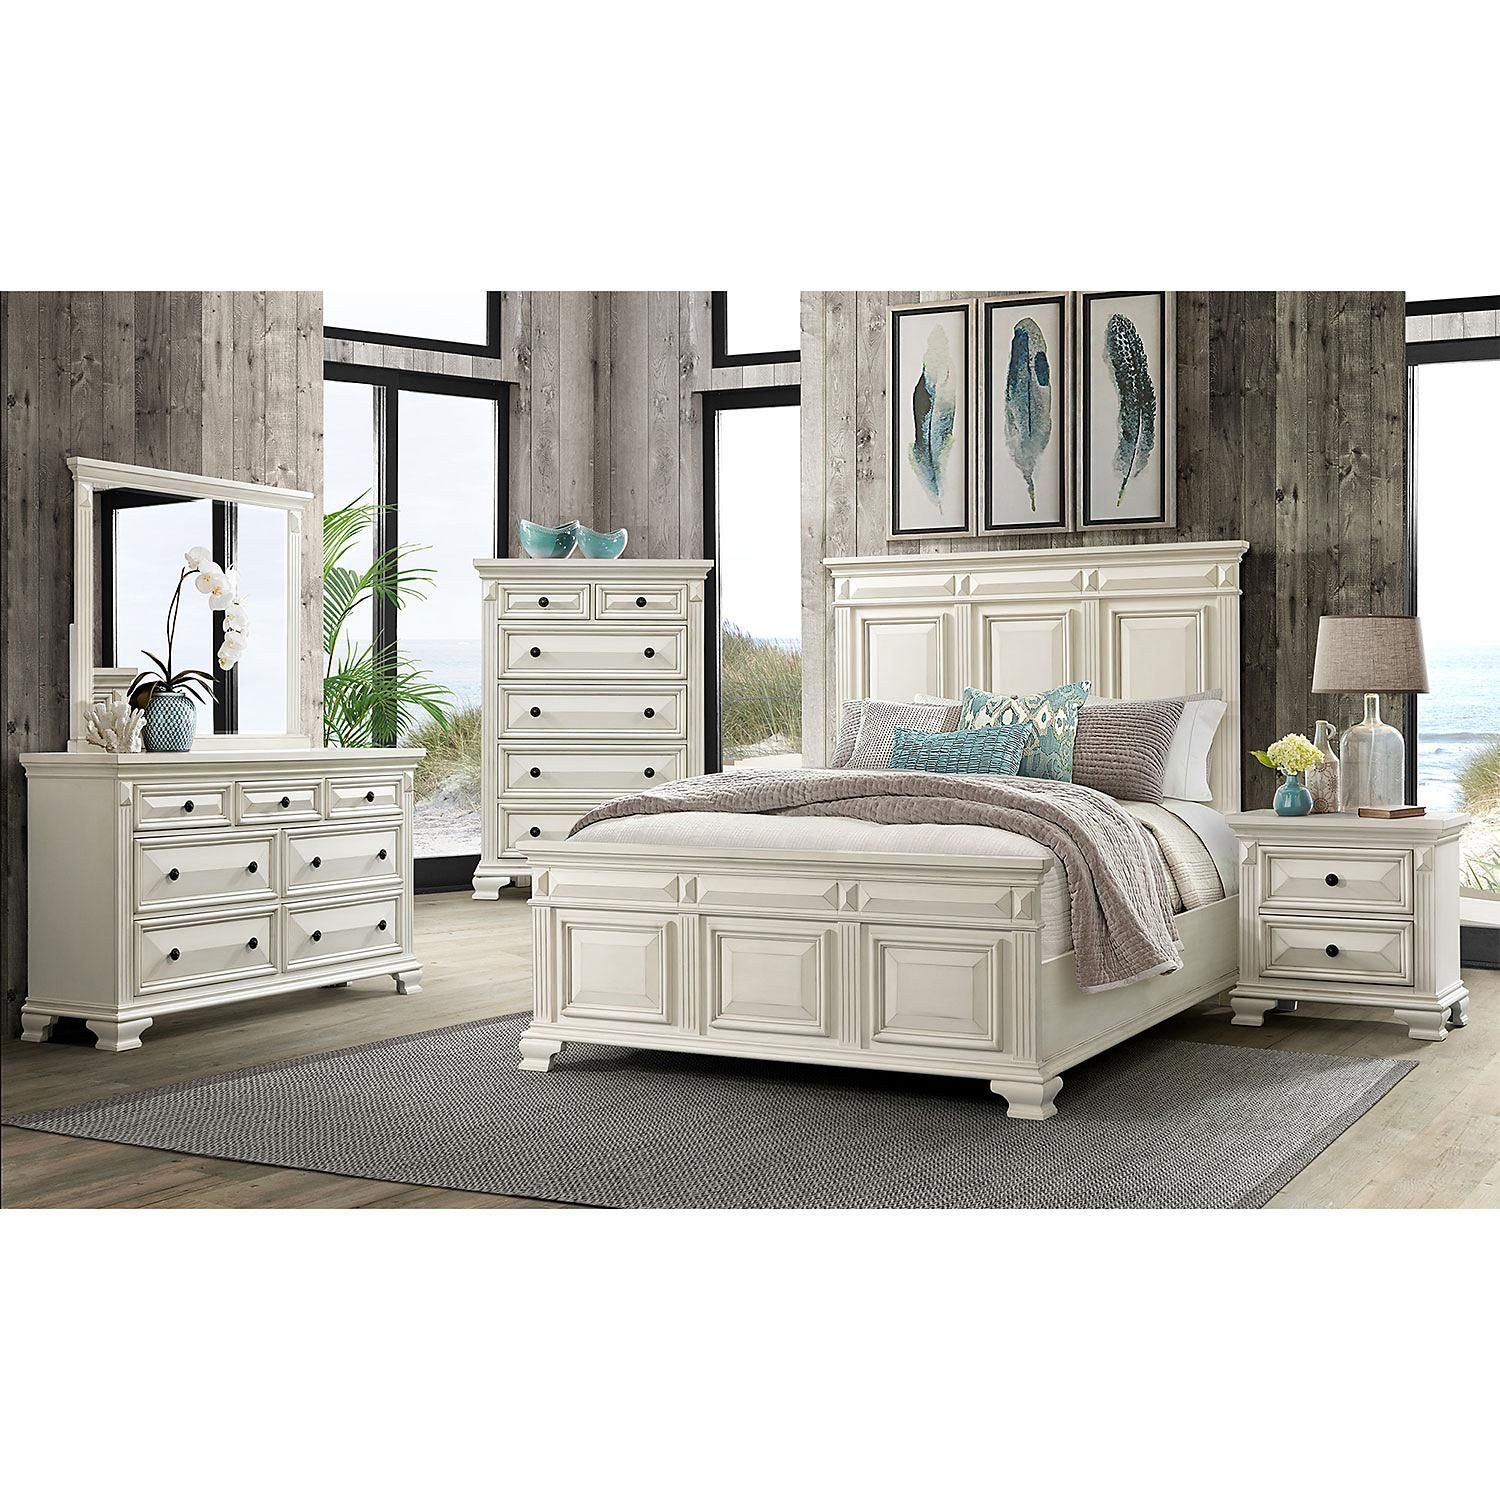 Full Size Bedroom Furniture Lovely $1599 00 society Den Trent Panel 6 Piece King Bedroom Set